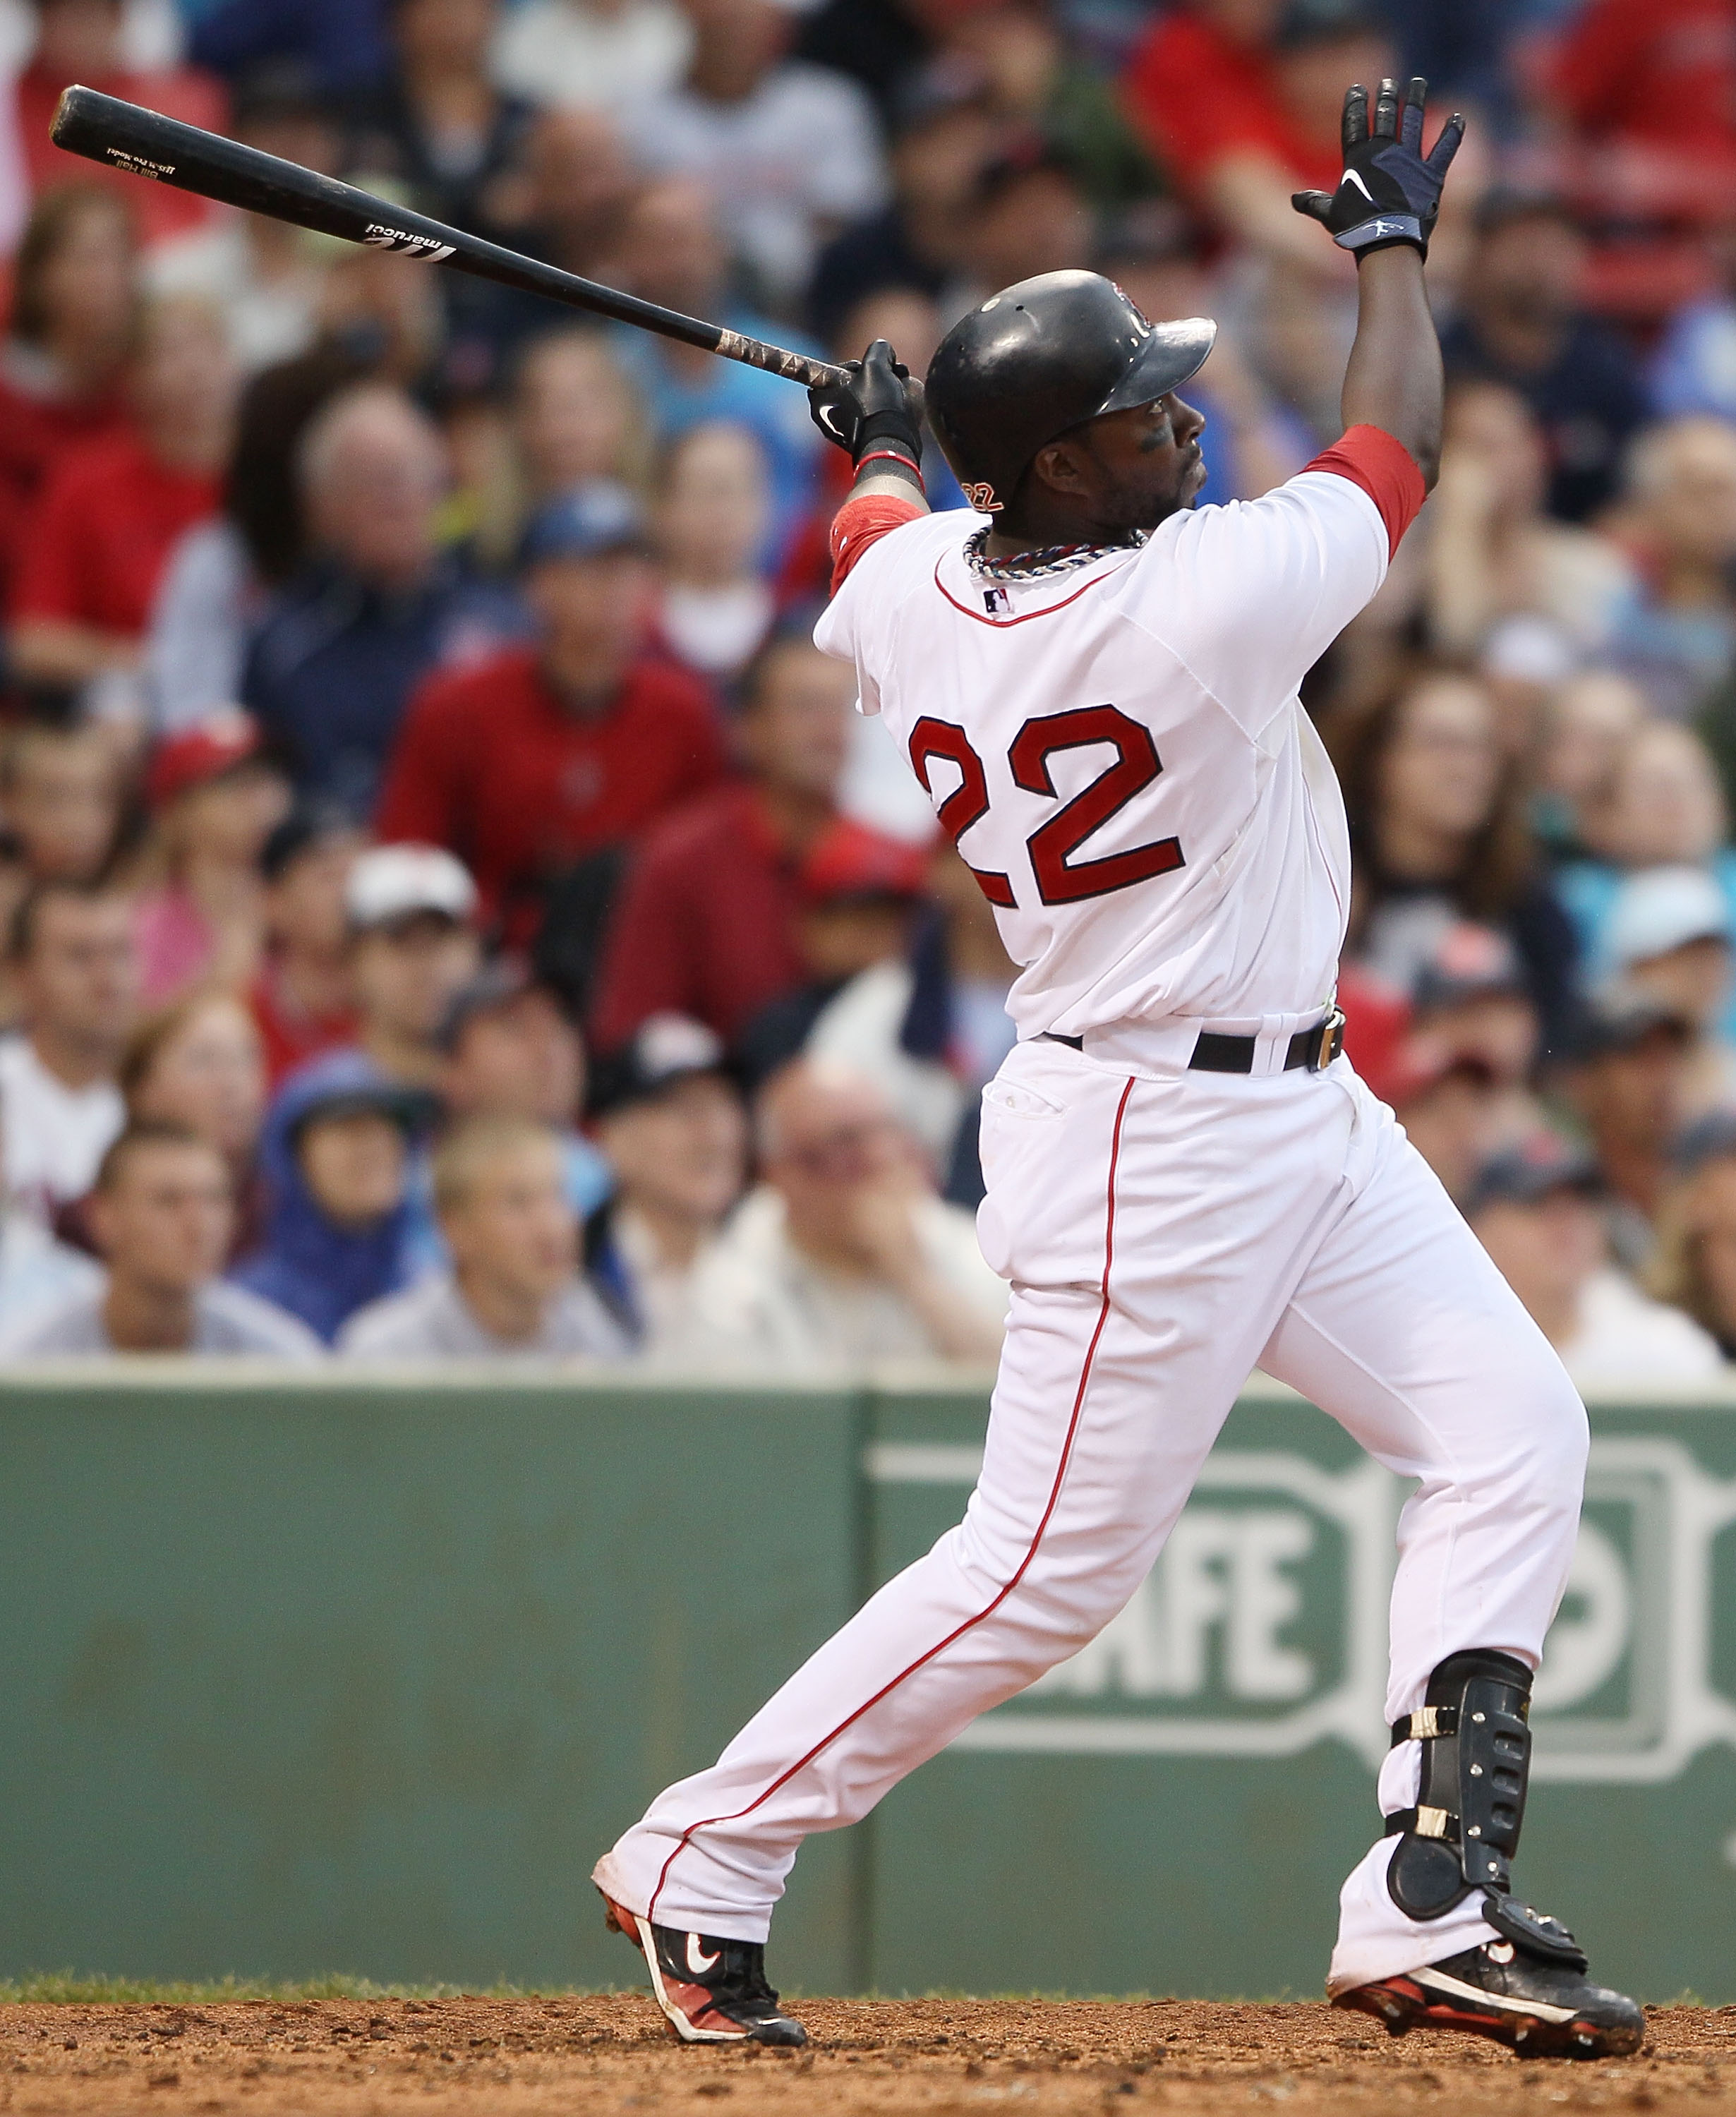 BOSTON - AUGUST 22:  Bill Hall #22 of the Boston Red Sox hits a two run homer in the fifth inning against the Toronto Blue Jays on August 22, 2010 at Fenway Park in Boston, Massachusetts.  (Photo by Elsa/Getty Images)